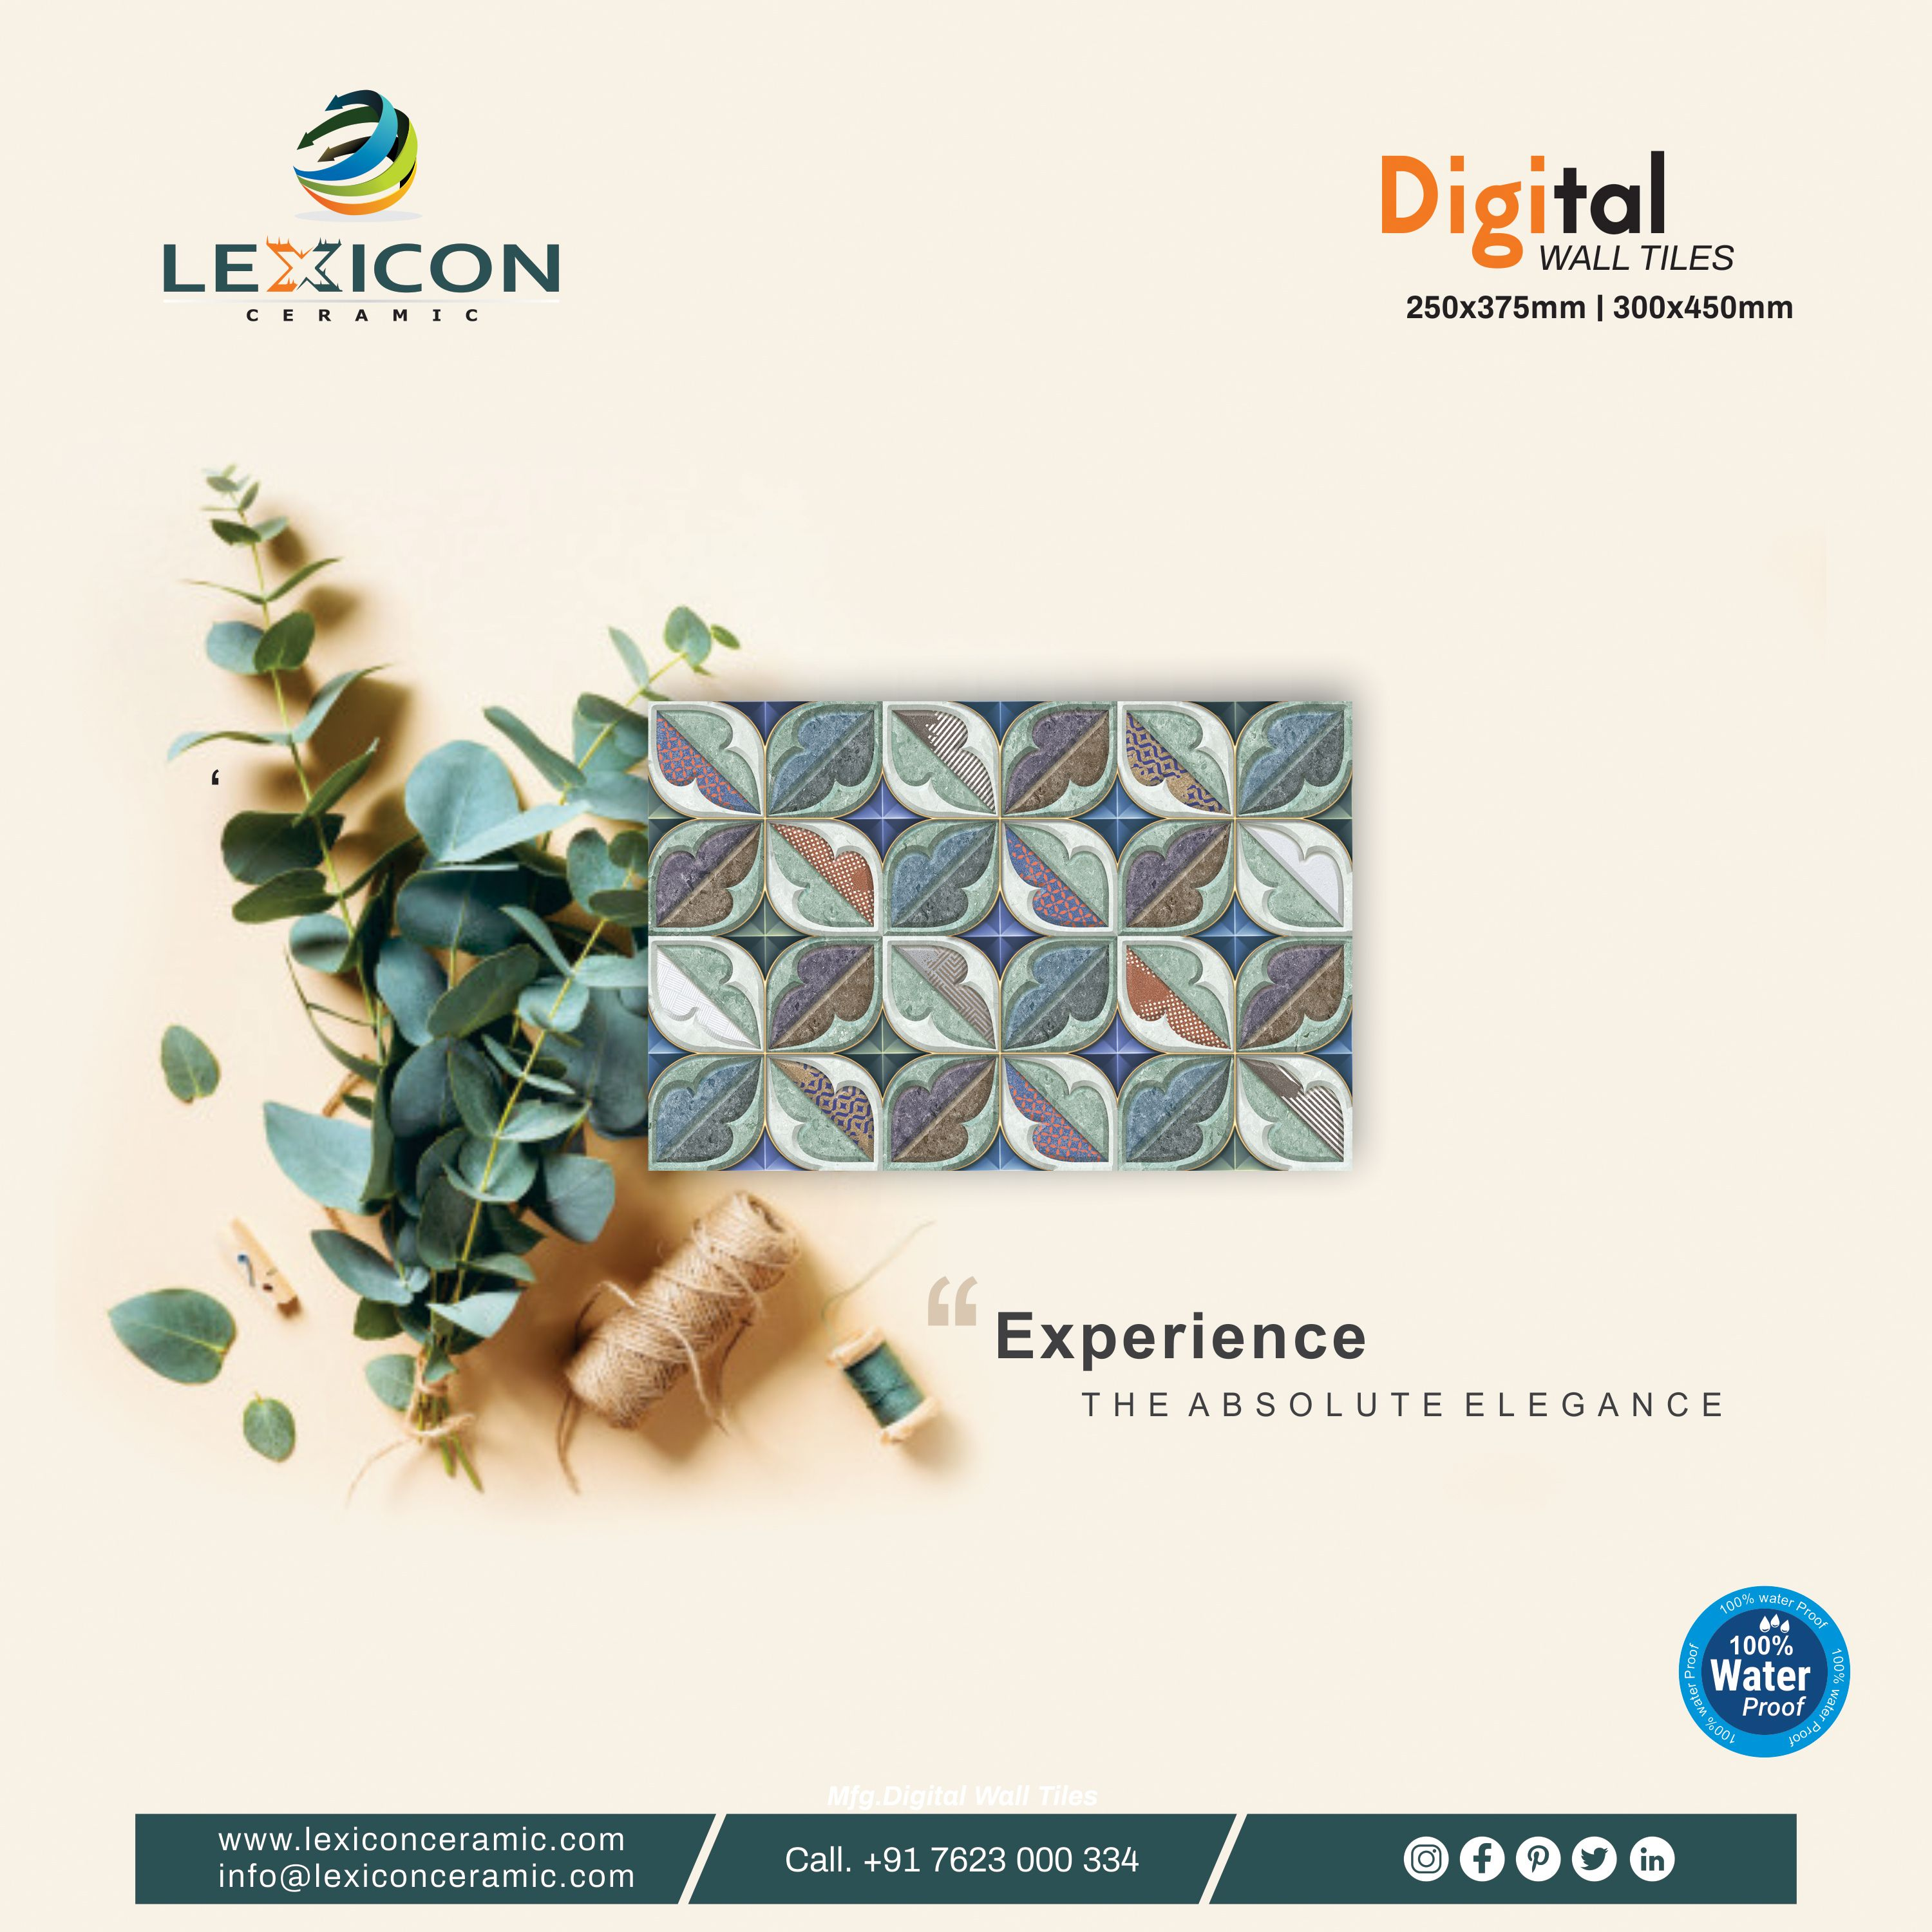 Experience The Absolute Elegance Digital Wall Tiles 250x375mm 300x450mm For More Visit Www Lexiconceramic Com Call Wall Tiles Digital Wall Tile Design